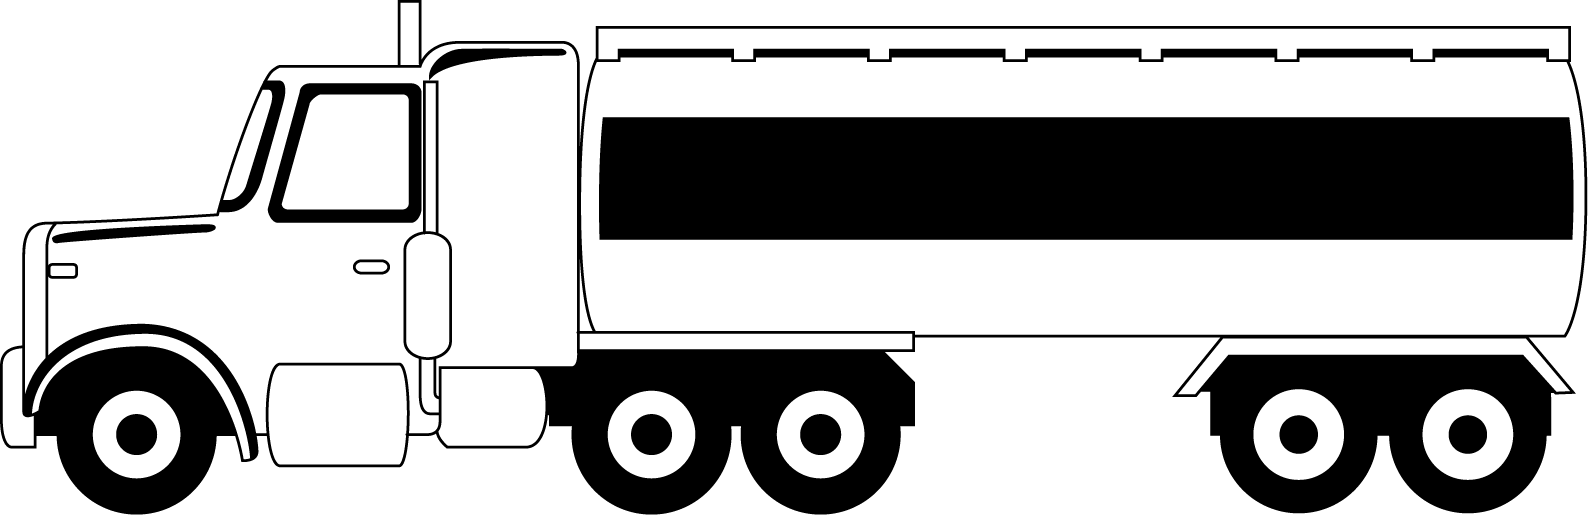 Free Coloring Pages Of Truck With Boat Trailer Baja Clipart.